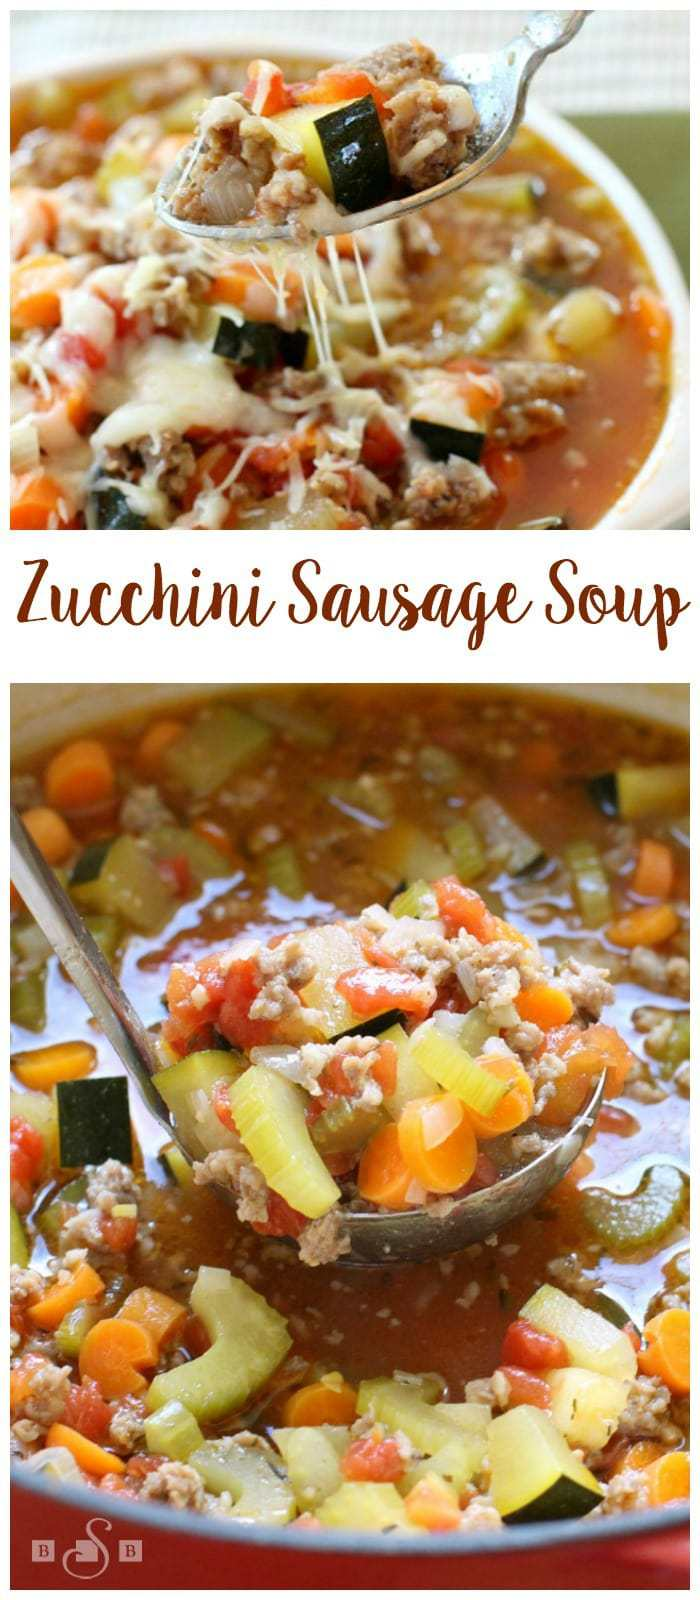 Easy recipe for Zucchini Sausage Soup that has wonderful fresh flavors and satisfies that comfort food craving all at once.